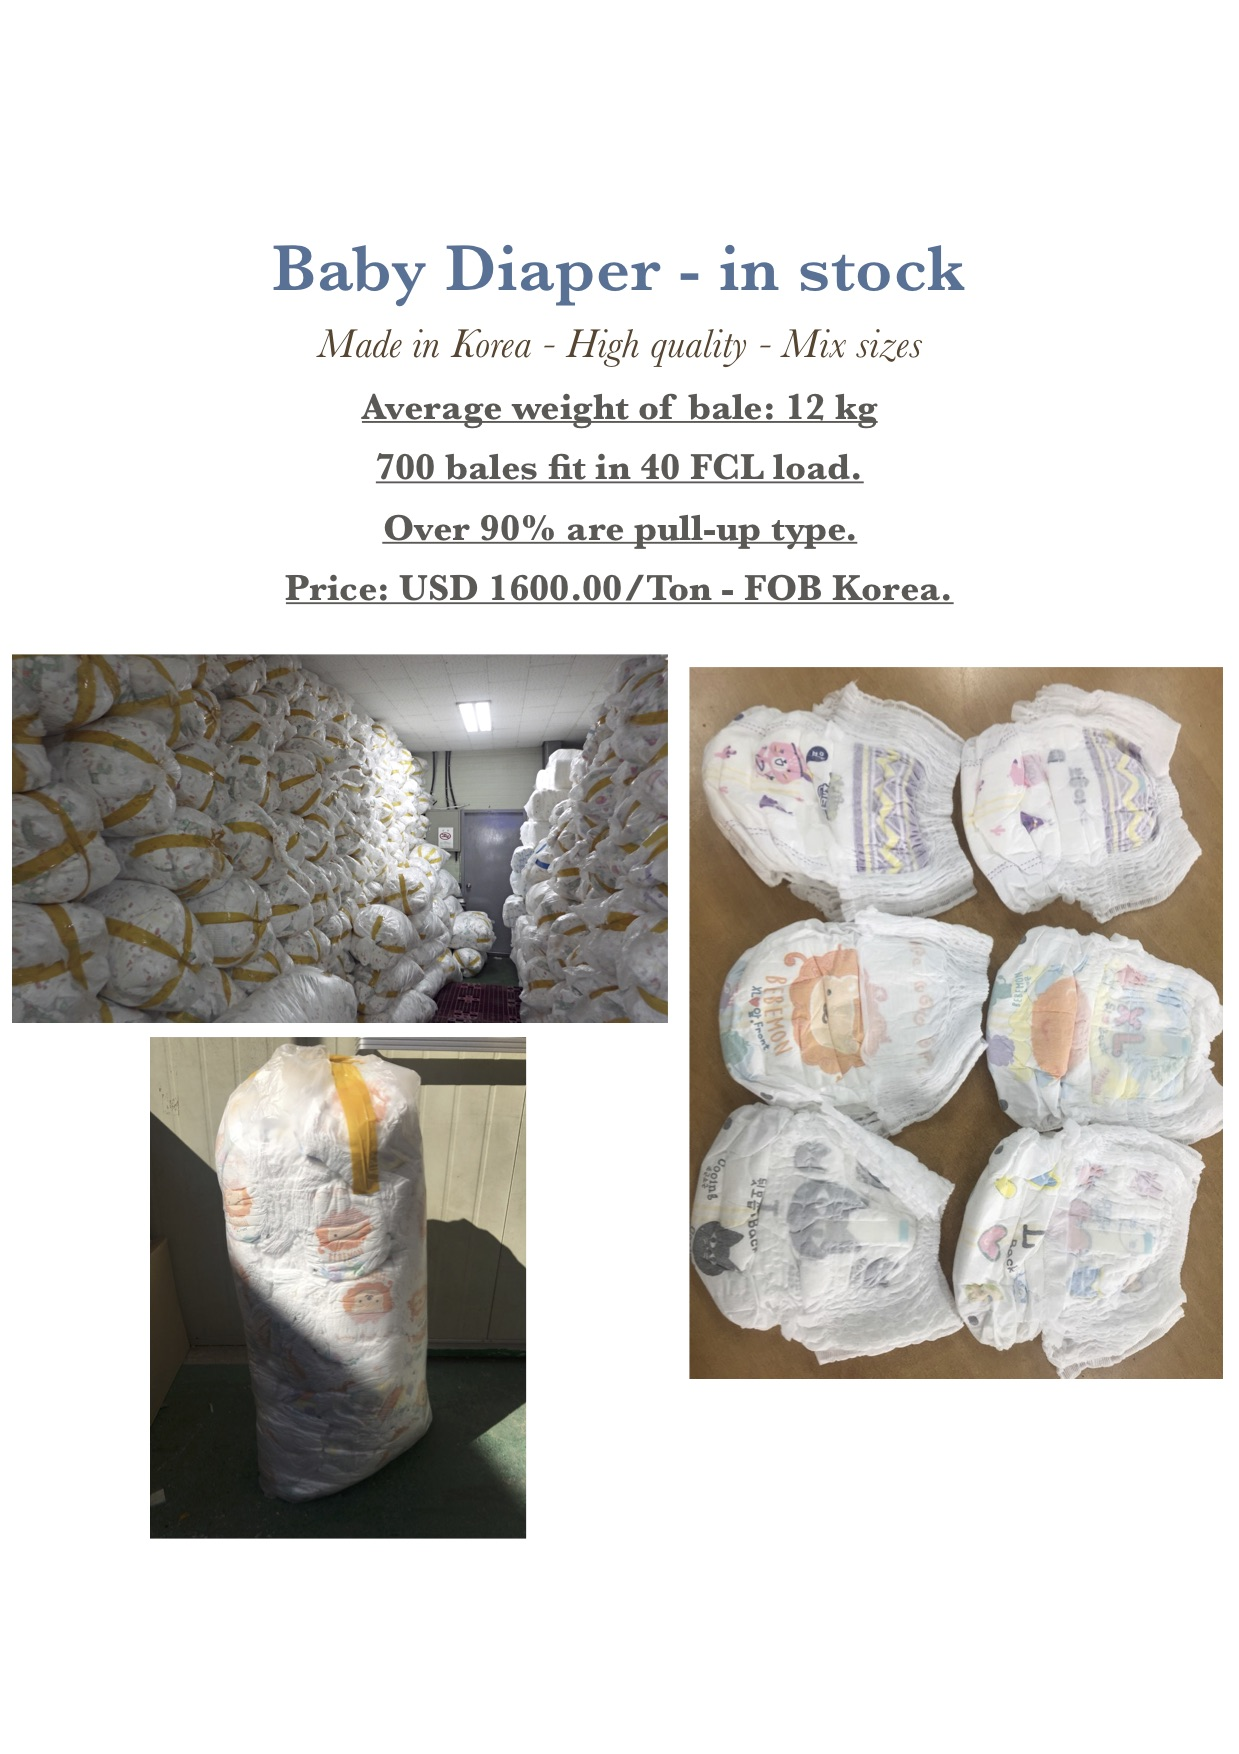 New Korea made Baby Disposable diapers in stock.